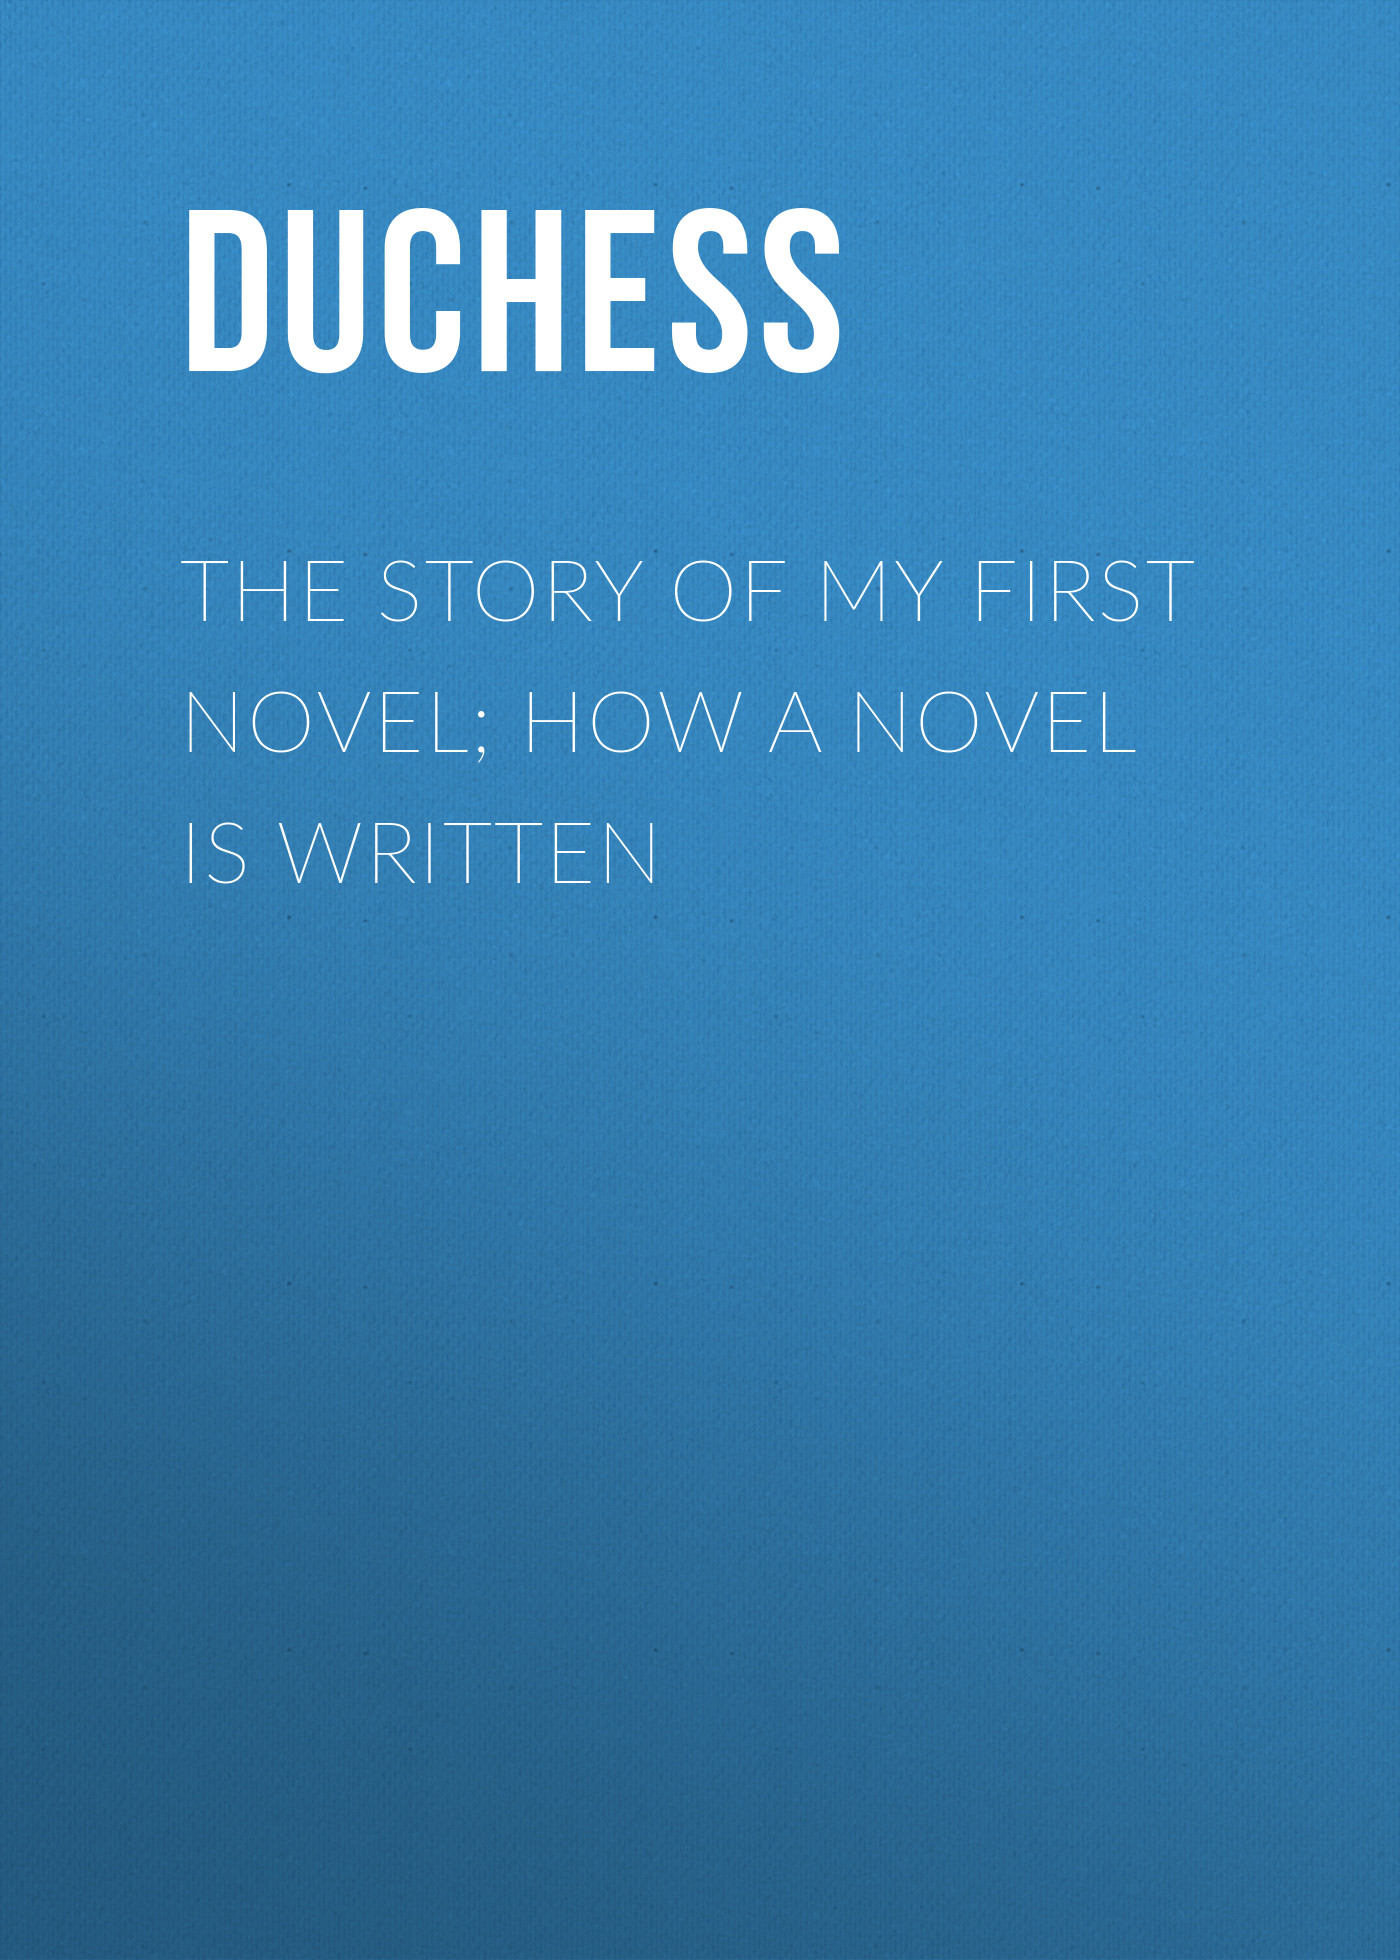 Duchess The story of my first novel How a novel is written